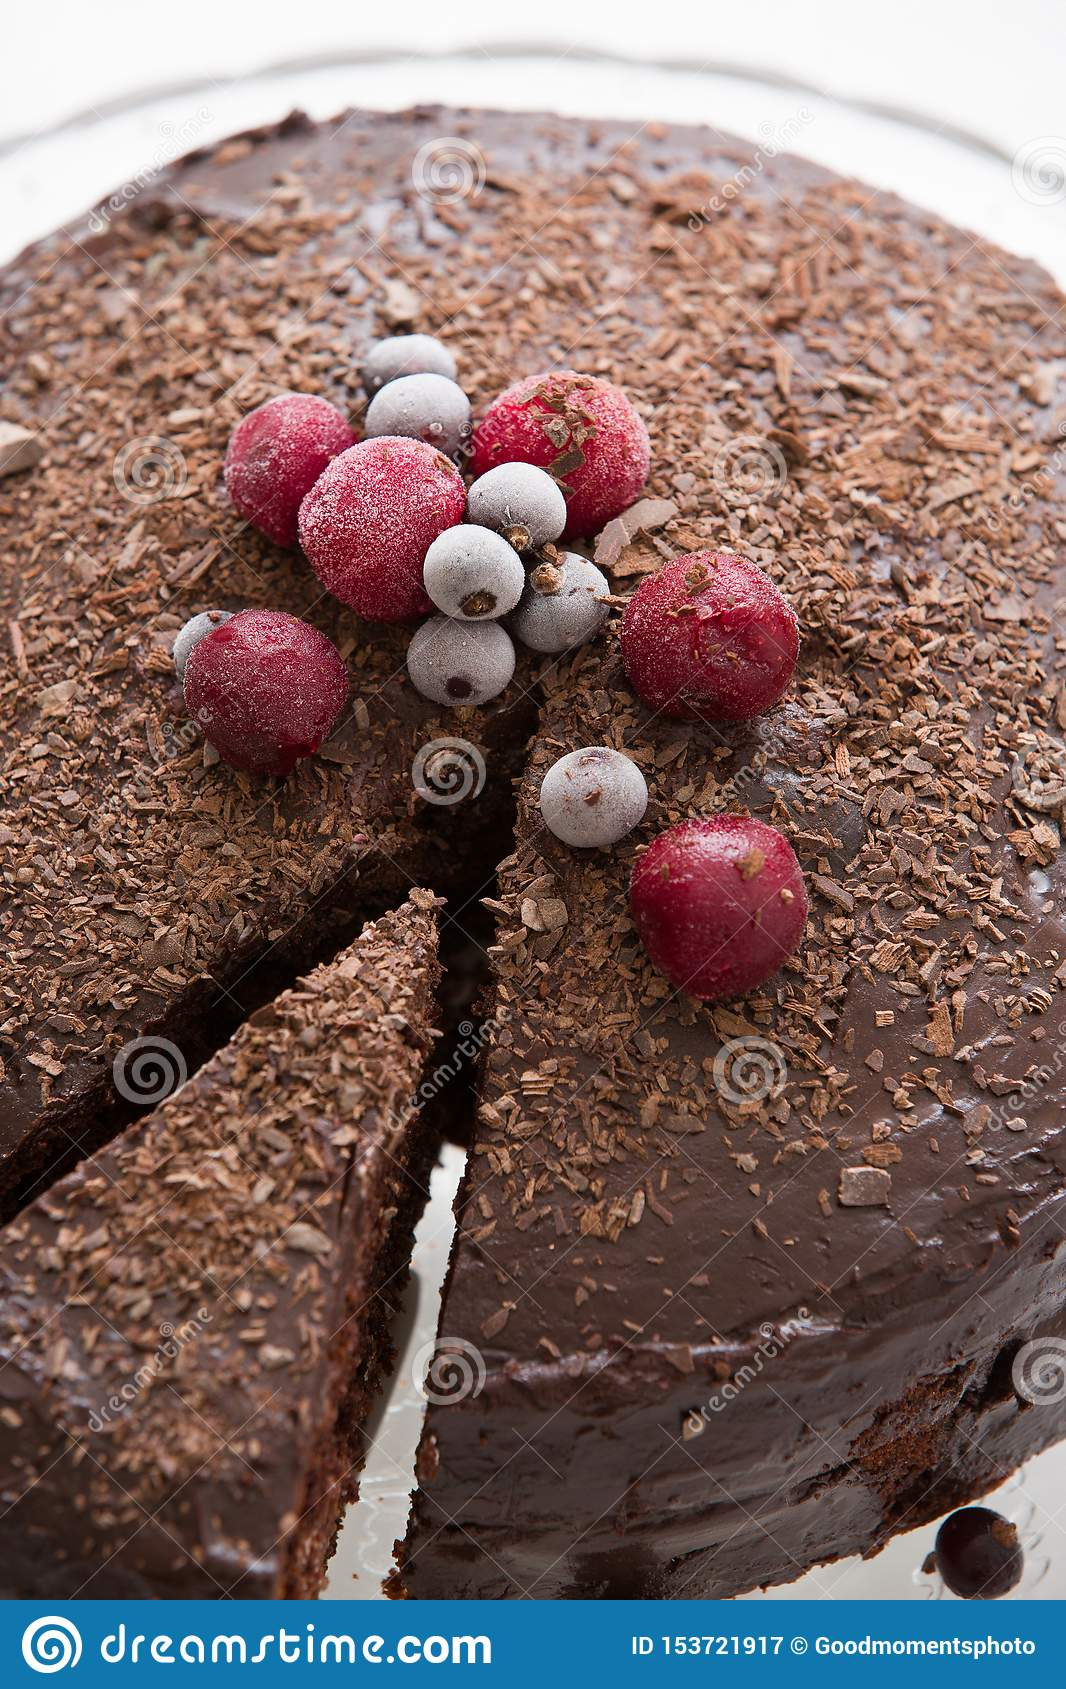 Homemade fresh chocolate birthday cake with organic frozen berries and chips on the top. Piece of cake and celebration